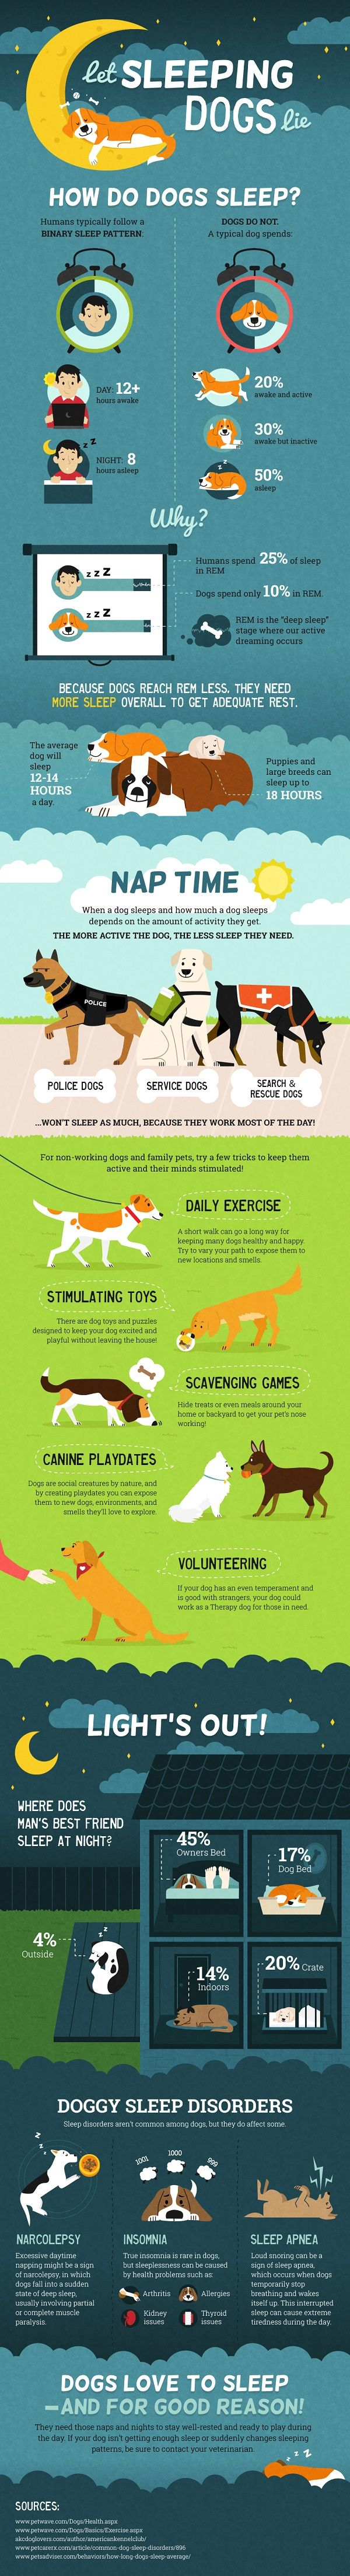 When a dog sleeps and how much a dog sleeps depends on the amount of activity they get. The more active the dog, the less sleep they need.